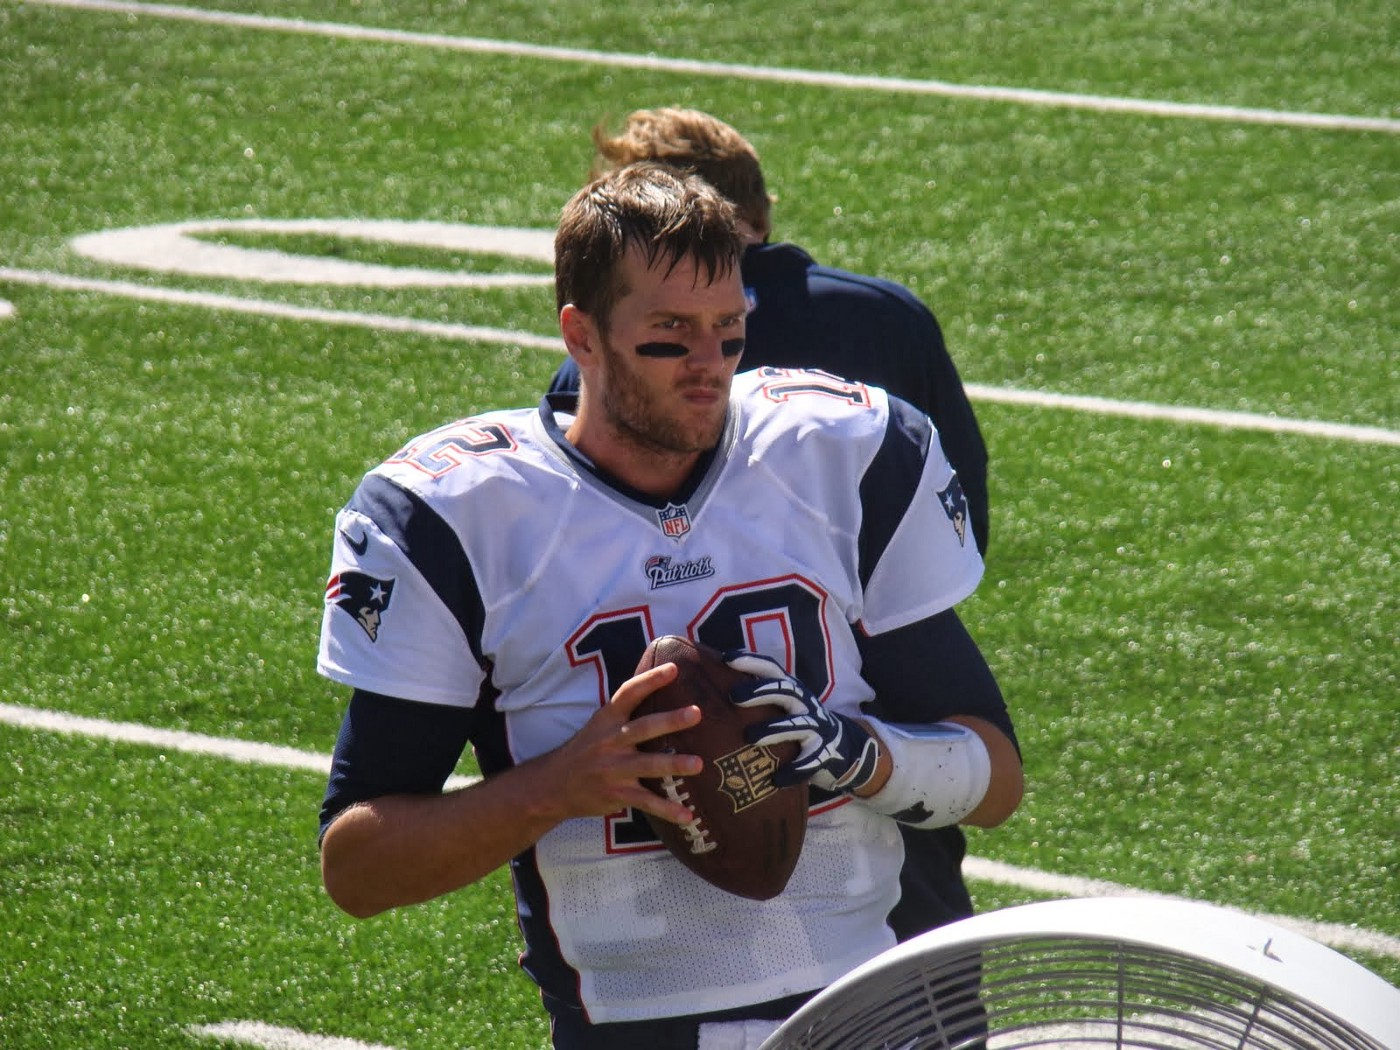 QB Tom Brady playing in Buffalo, NY